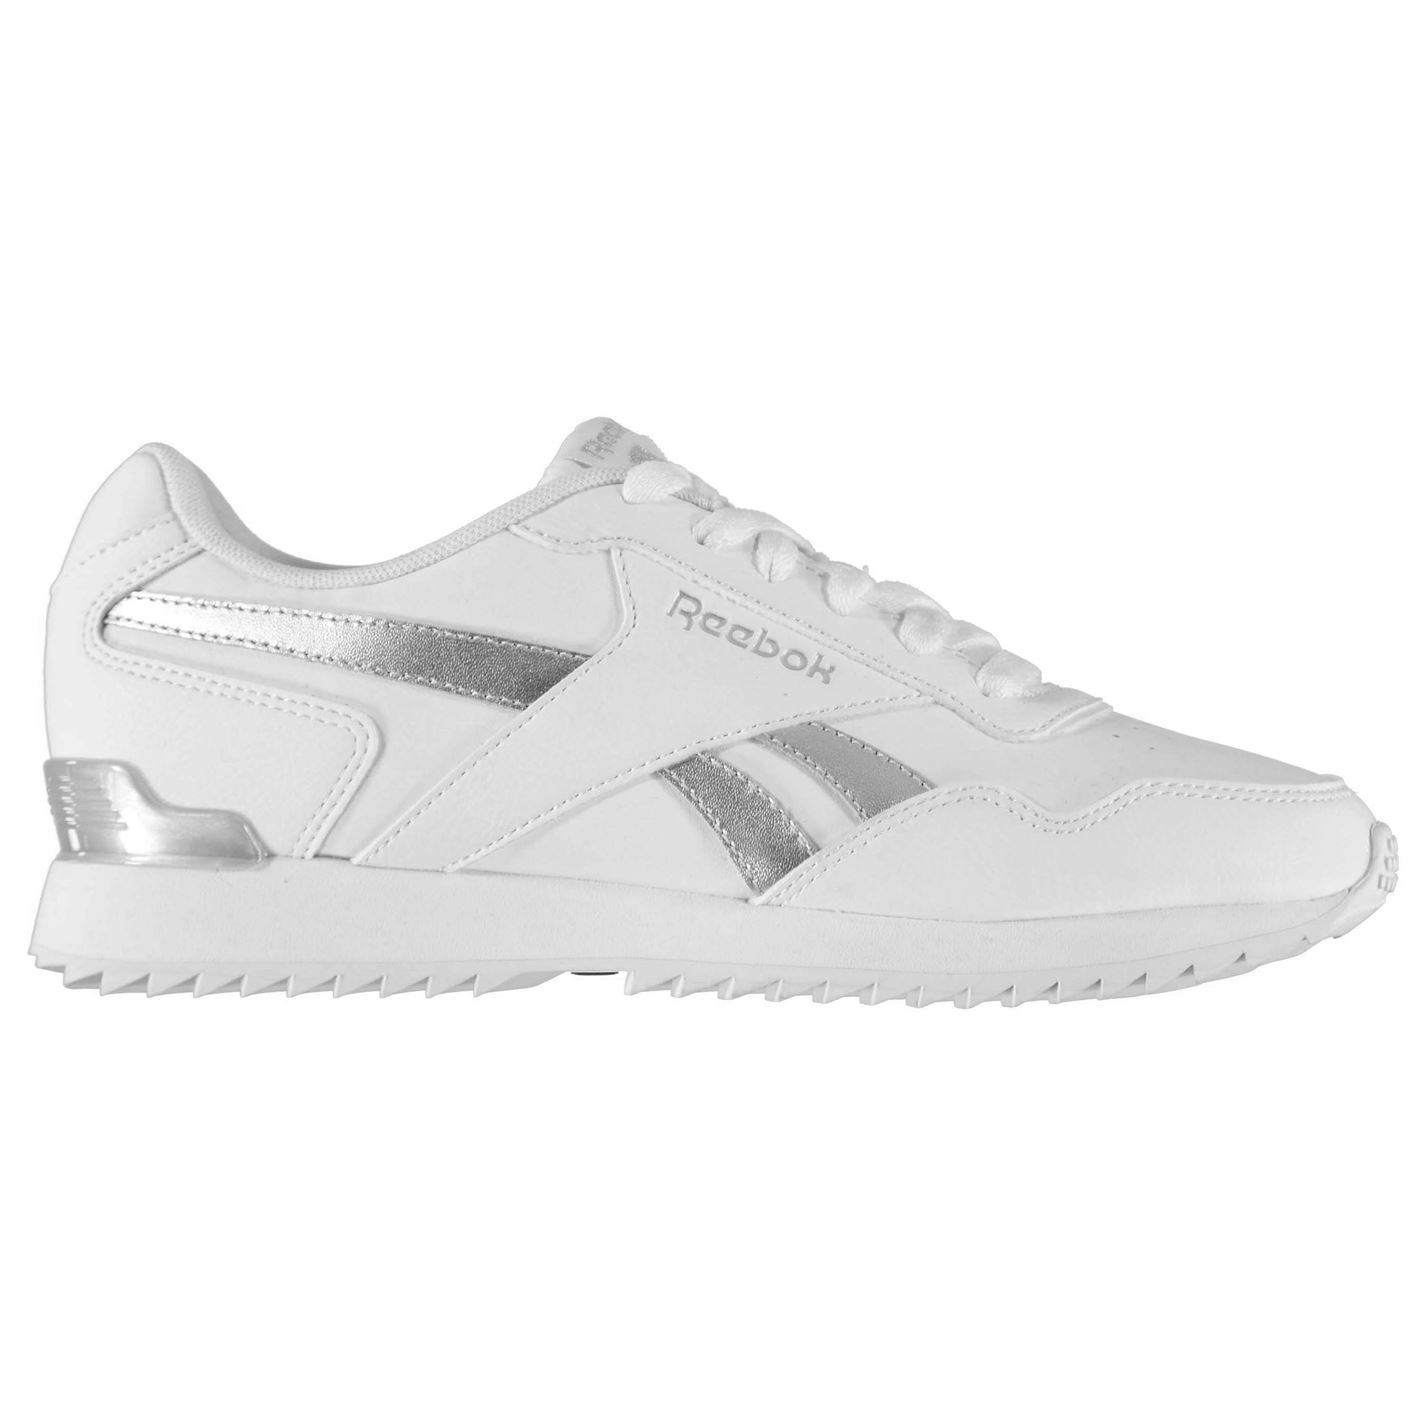 5ac50fdf4264bc Details about Reebok Royal Glide Ripple Clip Trainers Womens White Silver  Trainers Sneakers